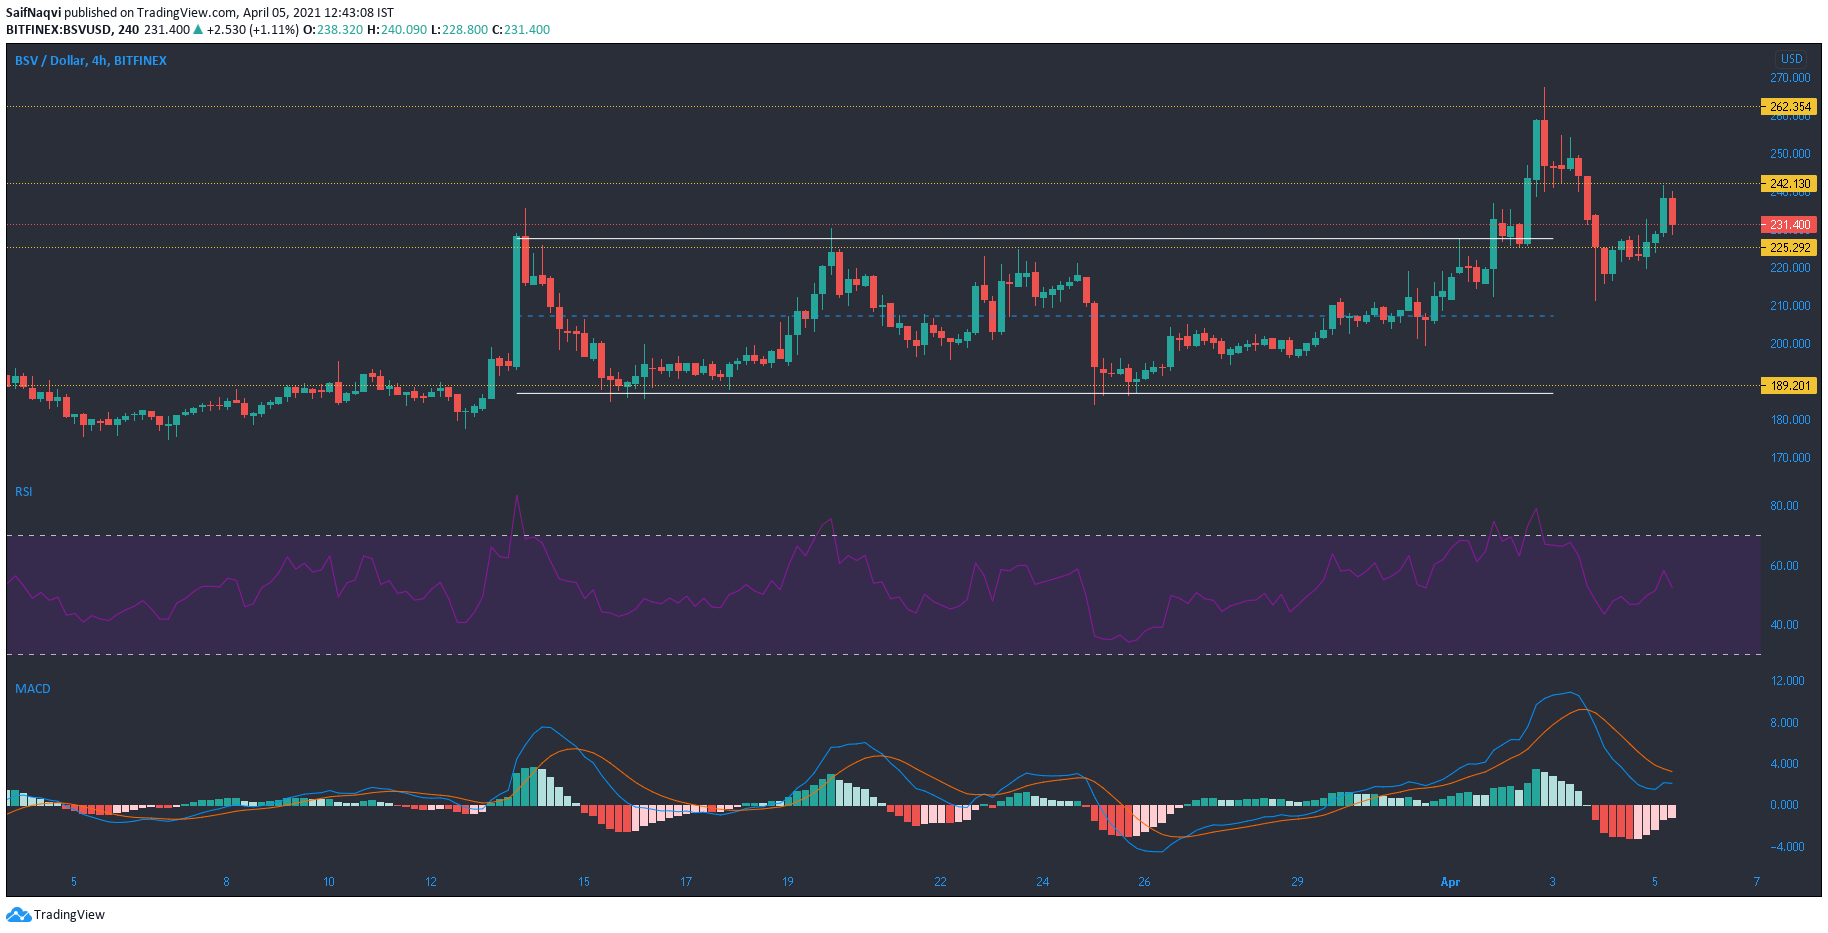 Bitcoin SV, Enjin Coin, Elrond Price Analysis: 05 April